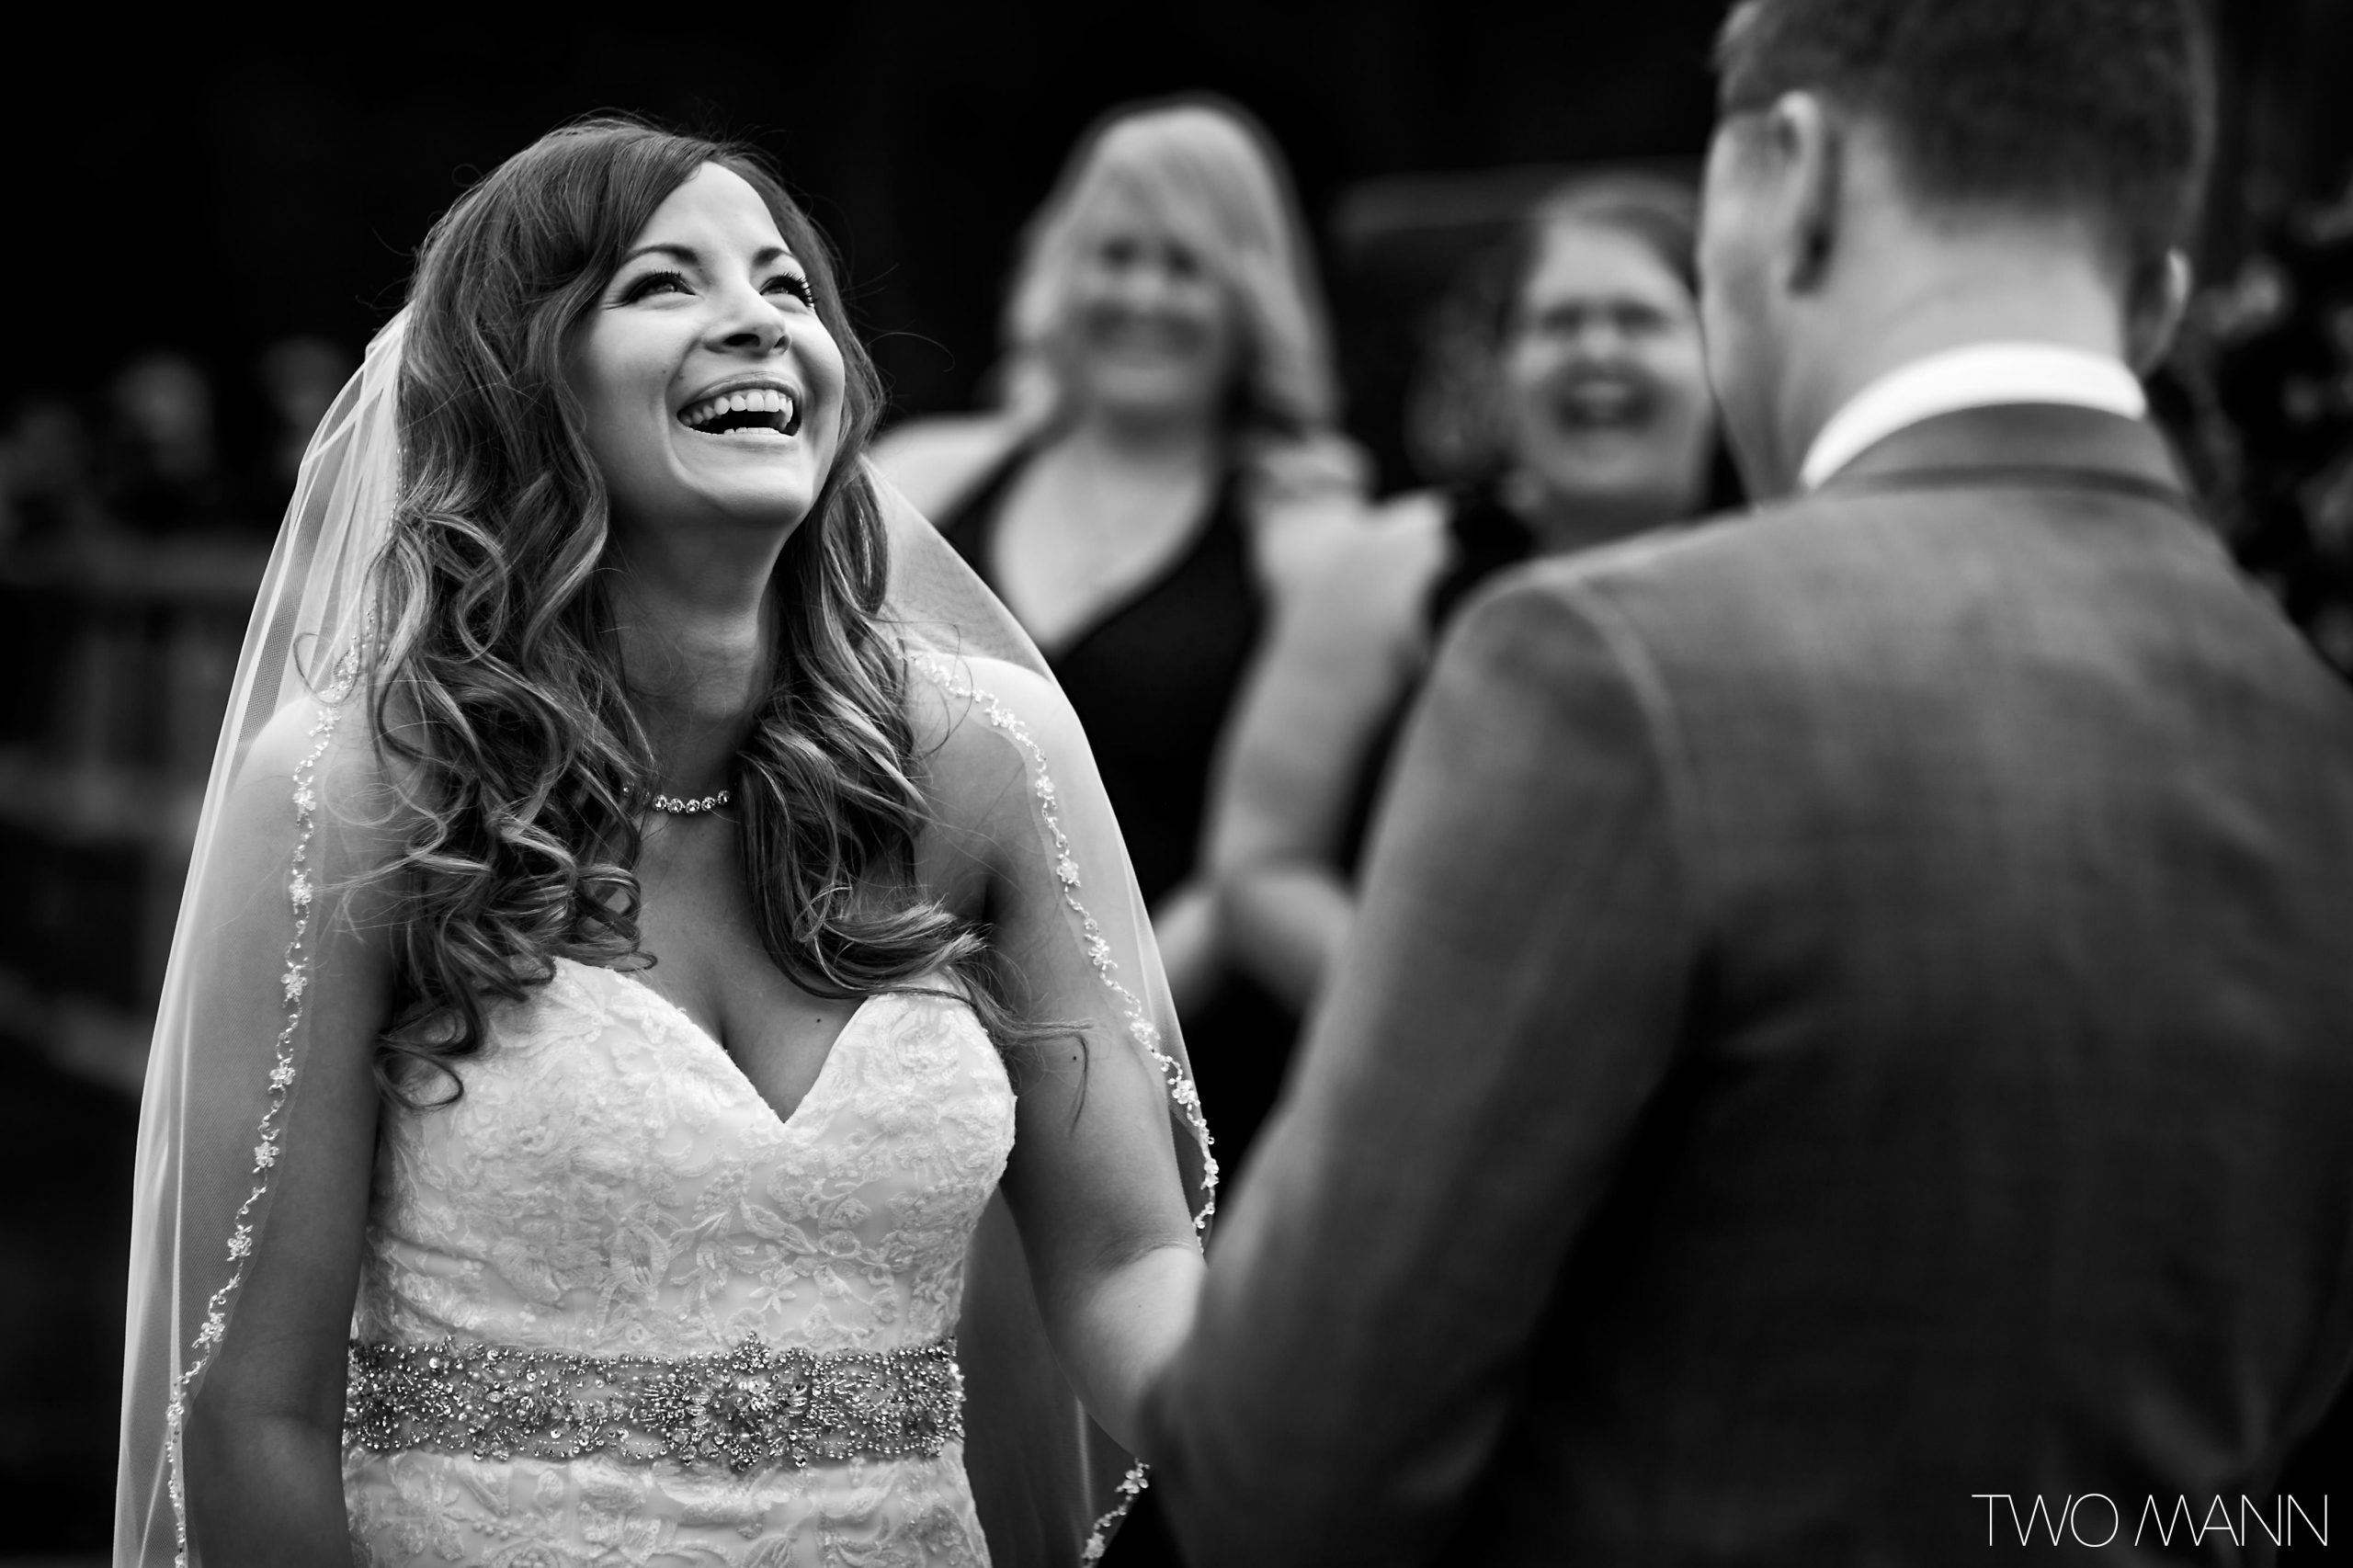 a smiling bride at wedding ceremony